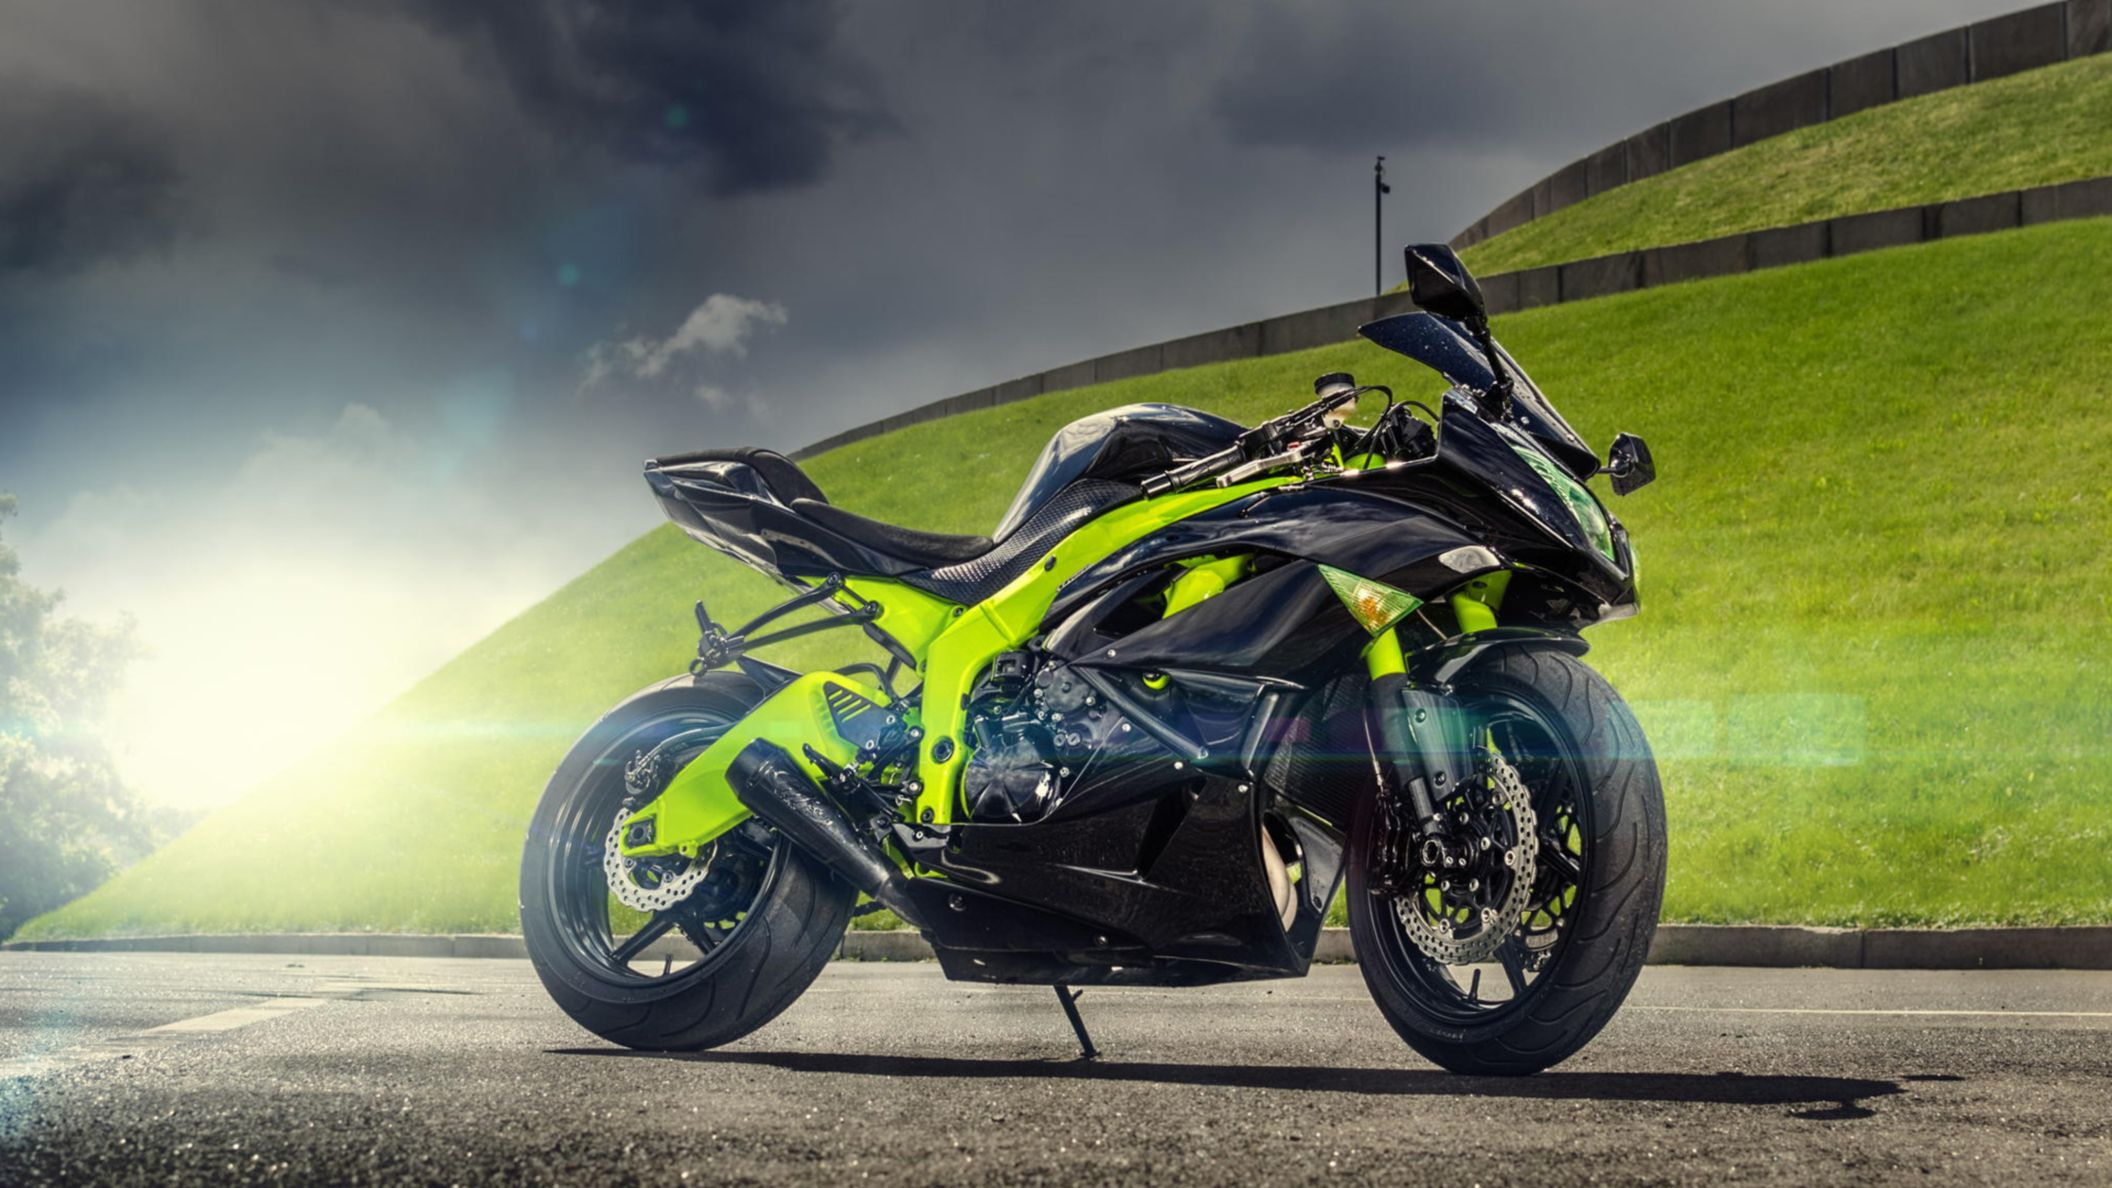 Download free HD 2015 Ninja ZX 6R HD Wallpaper, image